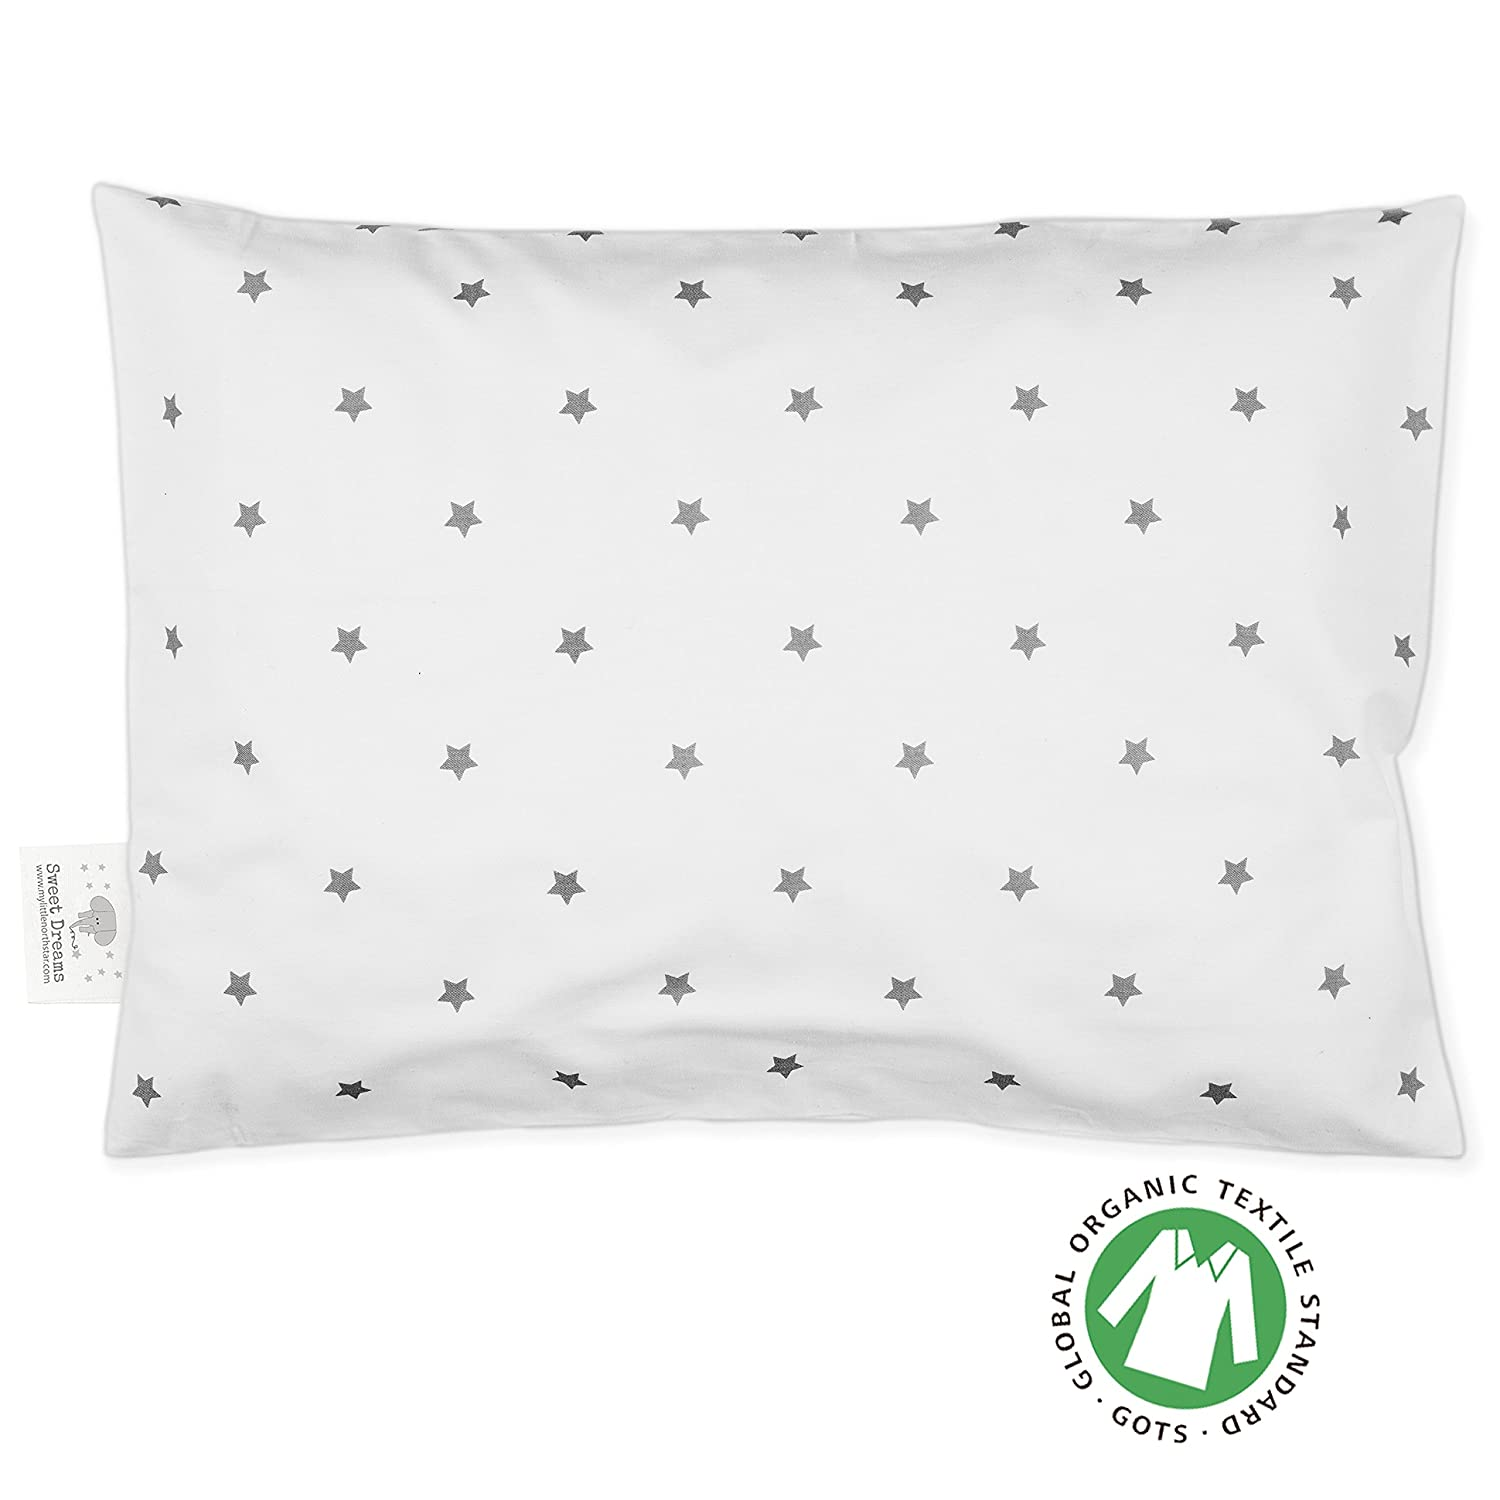 Toddler Pillowcase - 100% GOTS Certified Organic Cotton - Hypoallergenic Safe and Comfortable - No Harsh Chemicals on Your Toddler's Skin - White and Grey Stars My Little North Star